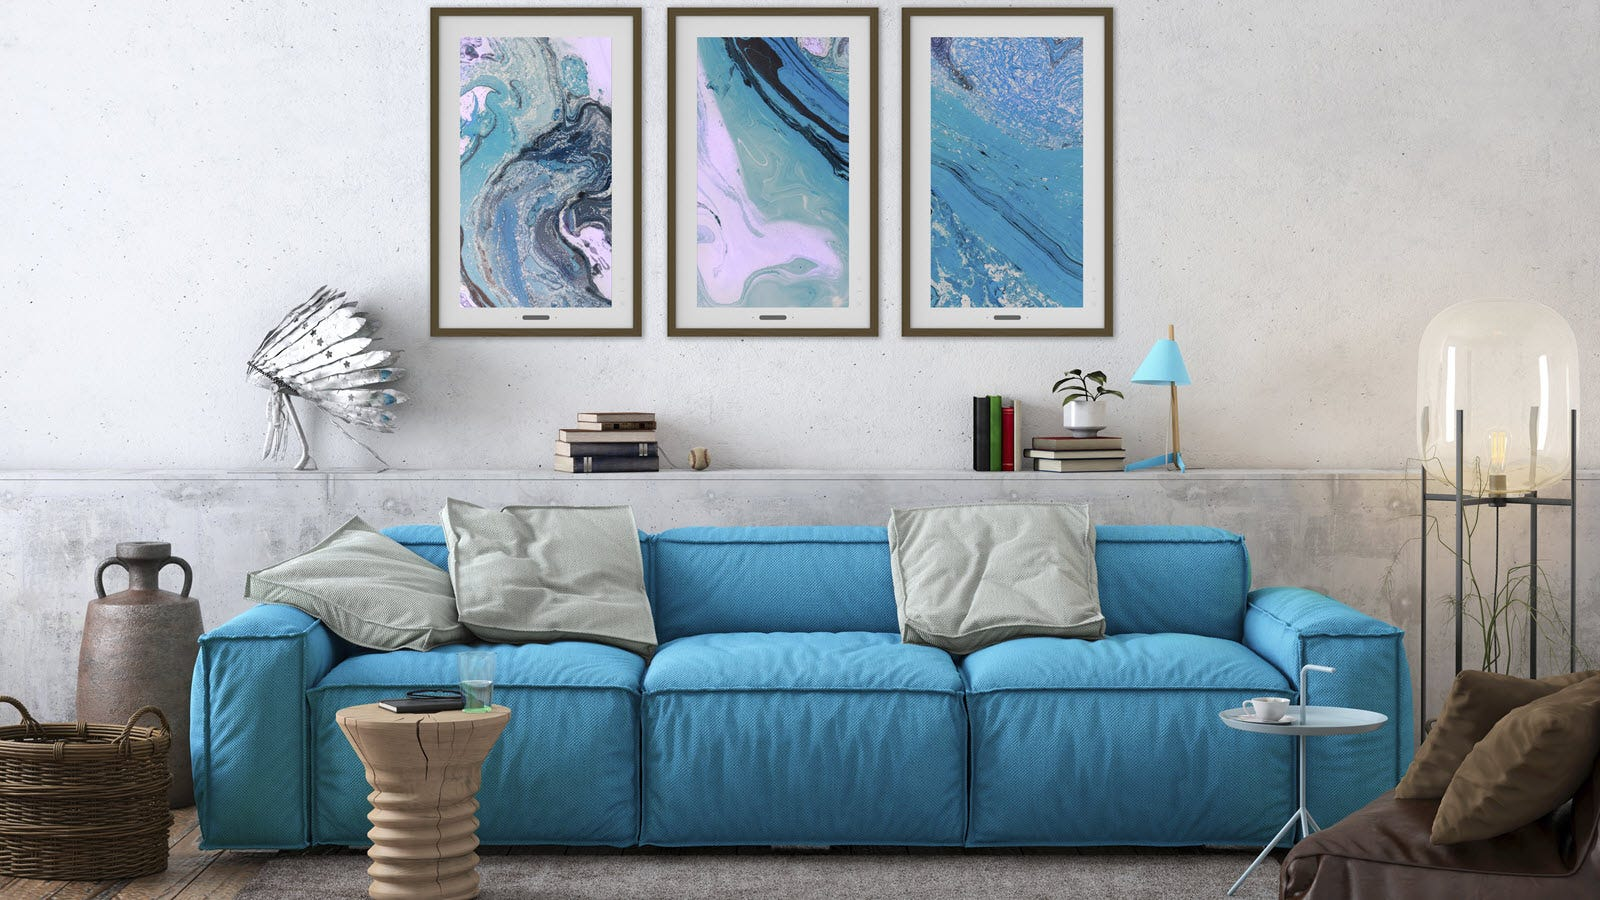 Three Lenovo Smart frames with a shared ocean view over a blue couch.